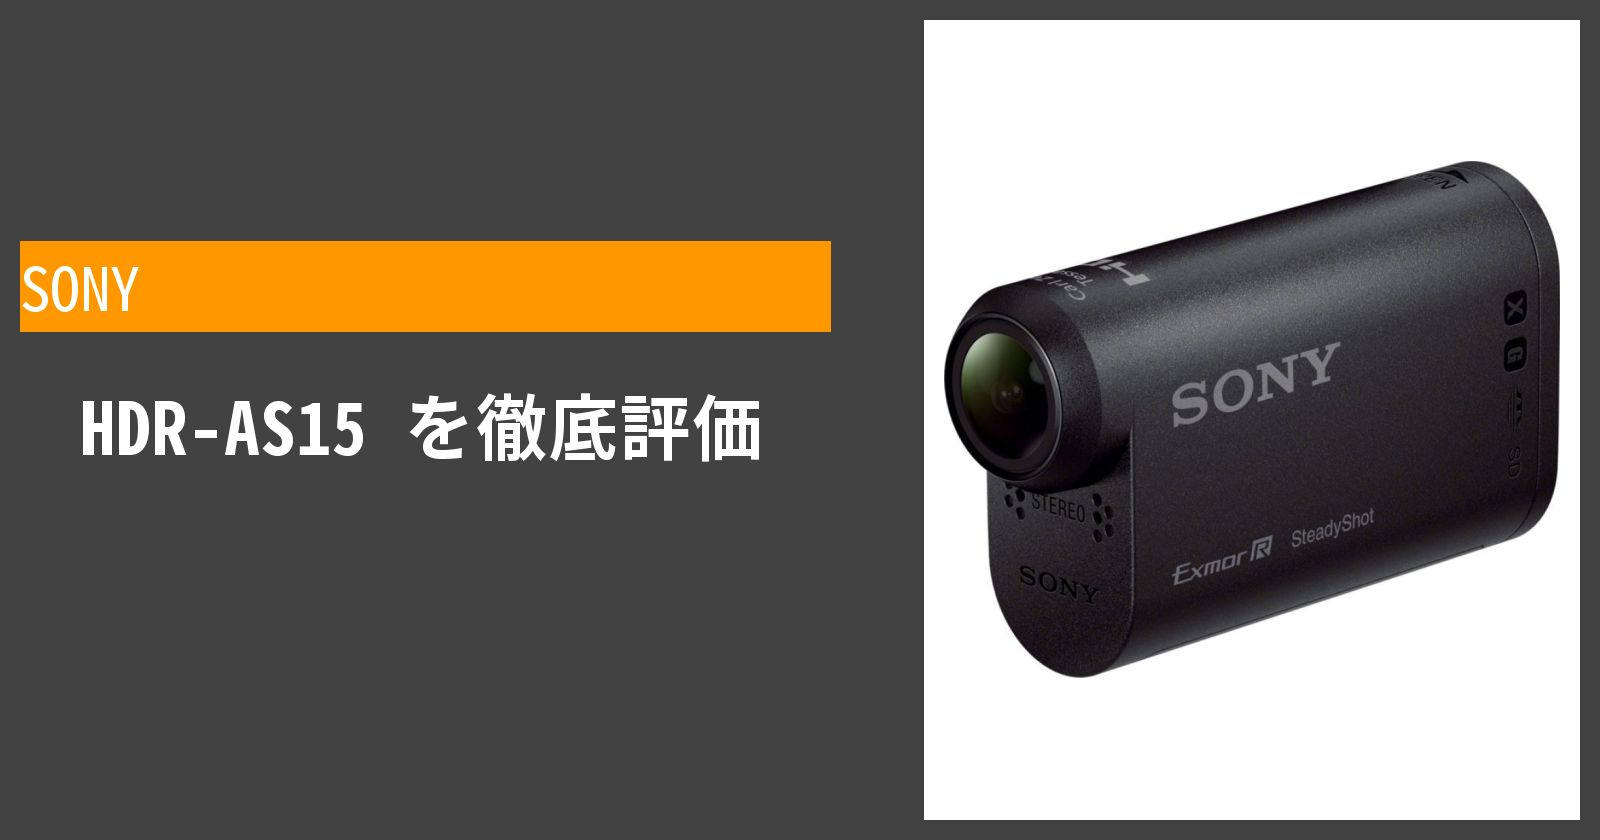 HDR-AS15を徹底評価